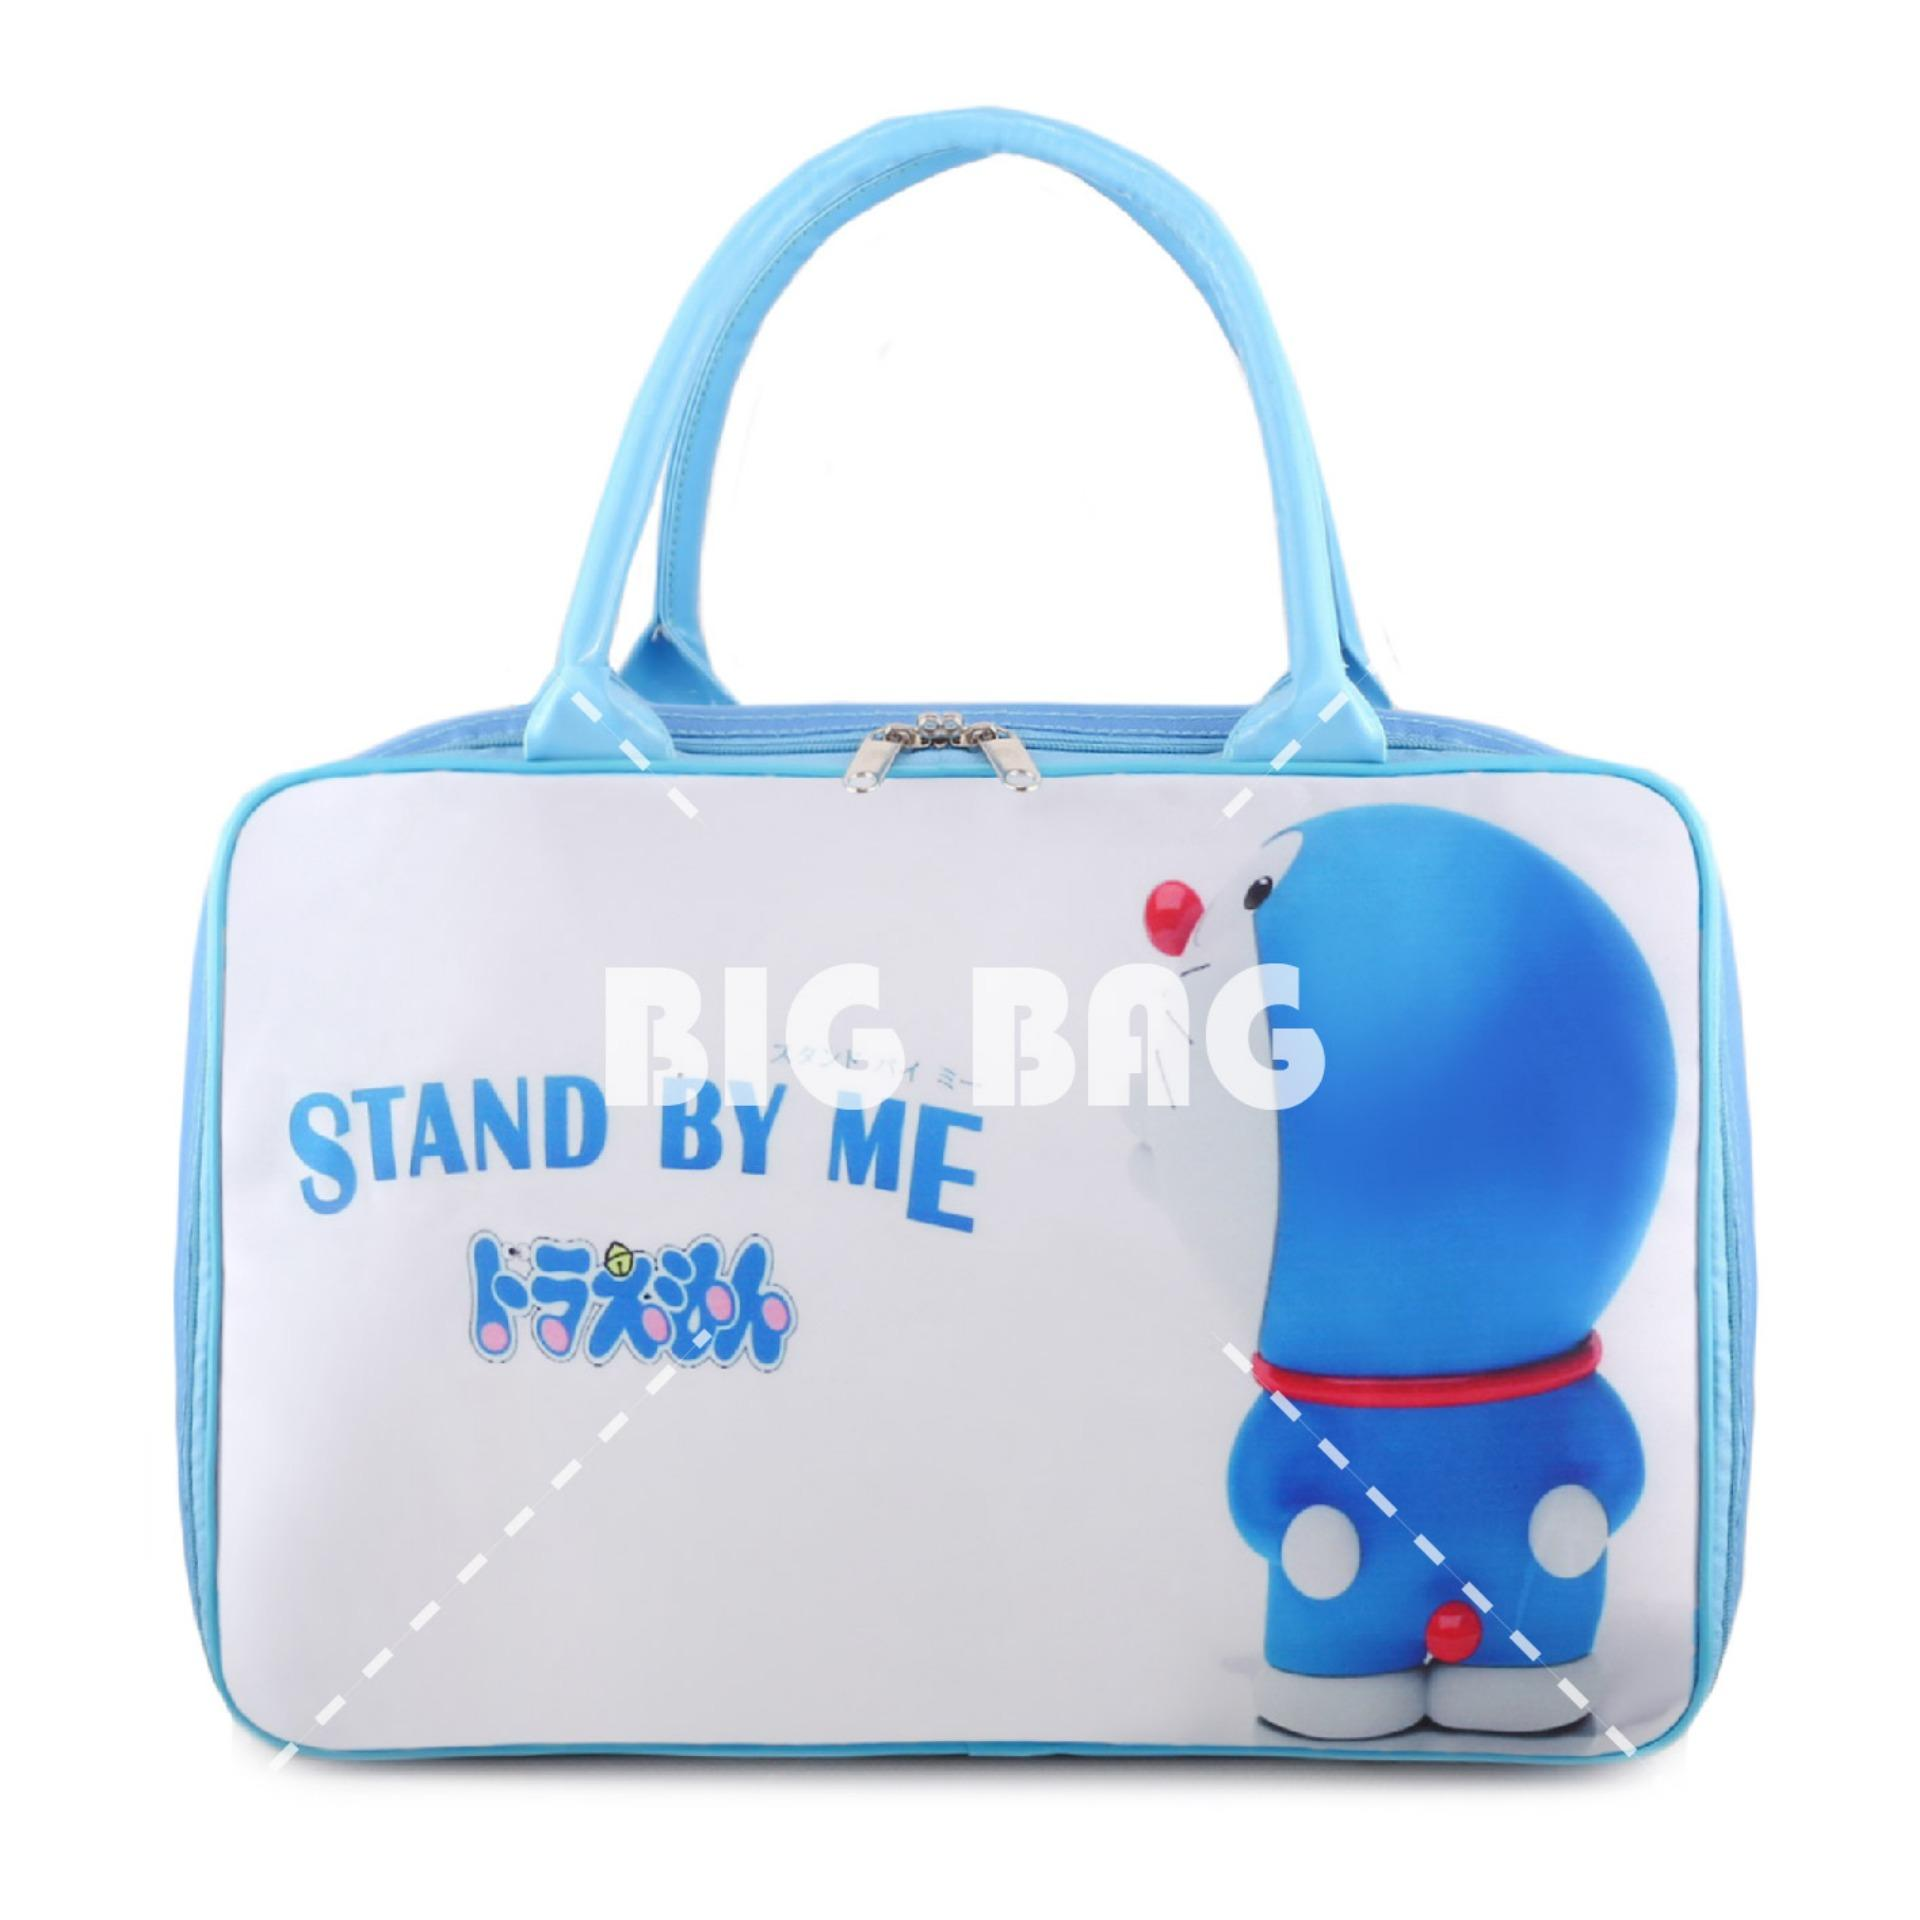 Beli Tas Anak Fashion Travel Bag Doraemon Lonely White Blue Tas Travel Tas Anak Karakter Online Terpercaya